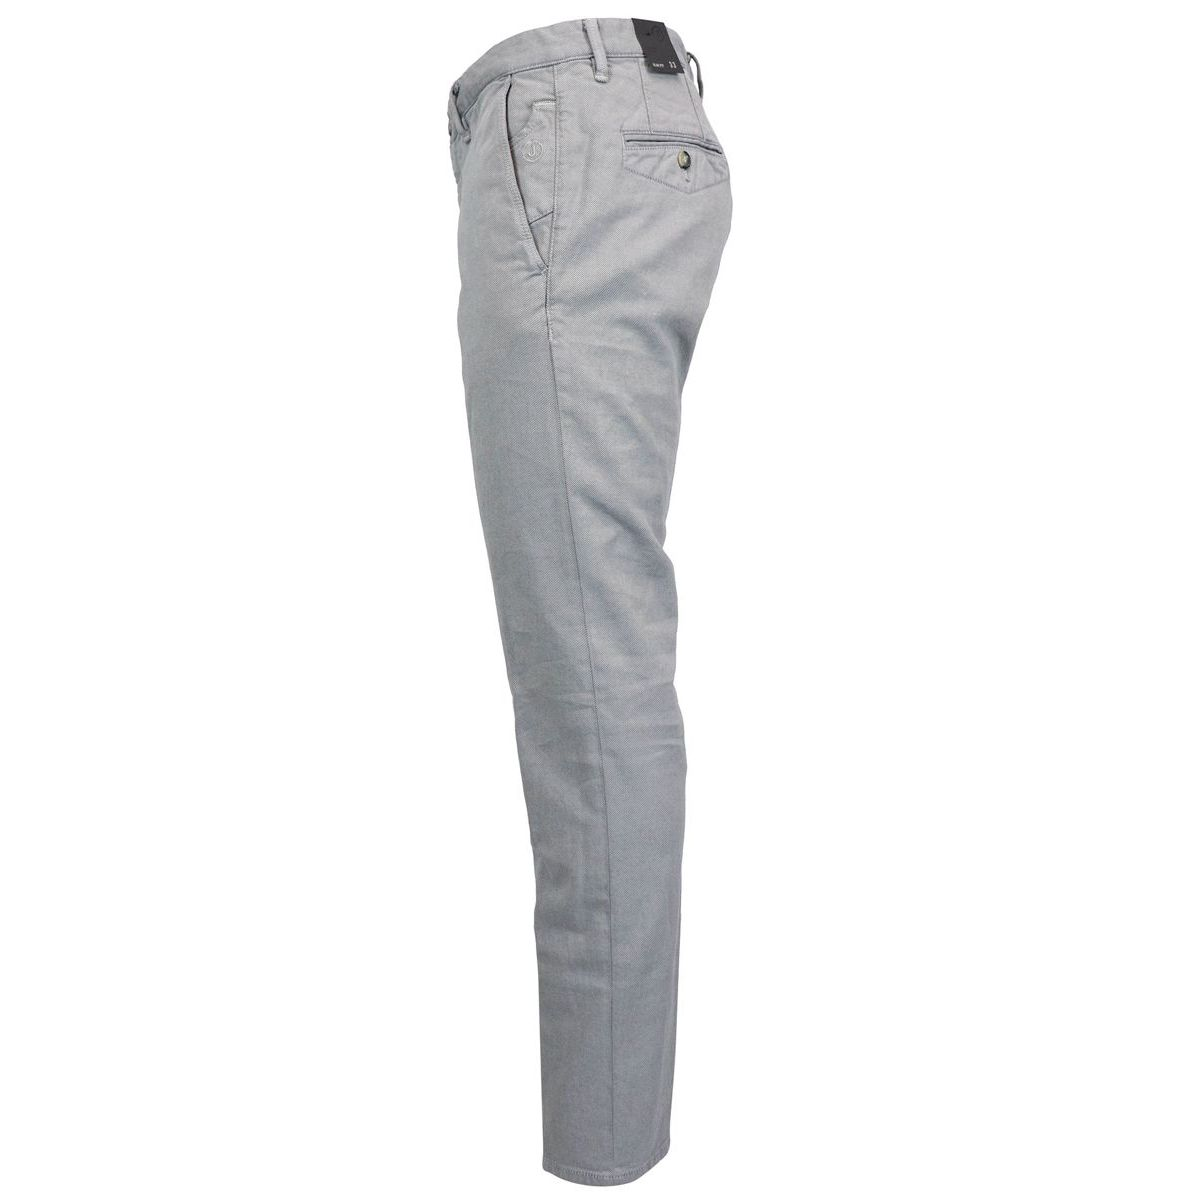 Cotton trousers with america pockets Grey Jeckerson